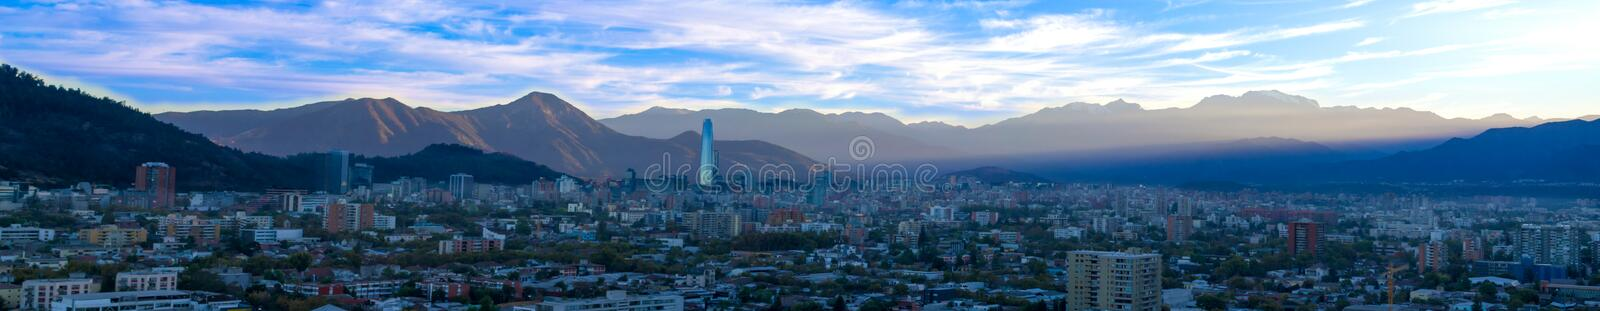 Vue panoramique de Santiago au Chili photographie stock